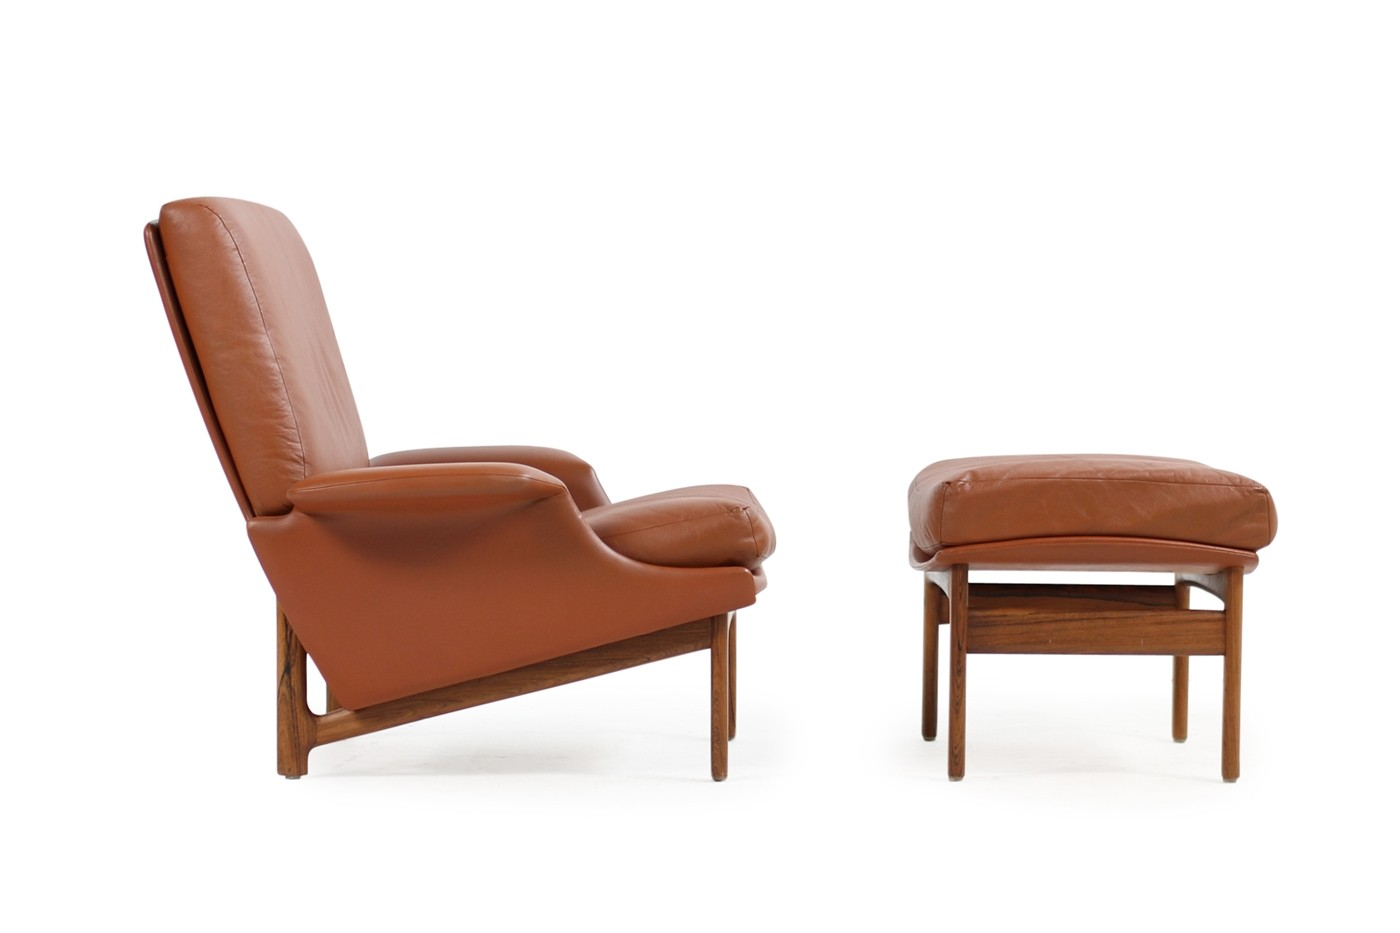 Lounge Sessel Leder Cognac Exclusive 1960s Ib Kofod Larsen Lounge Chair Adam Cognac Leather